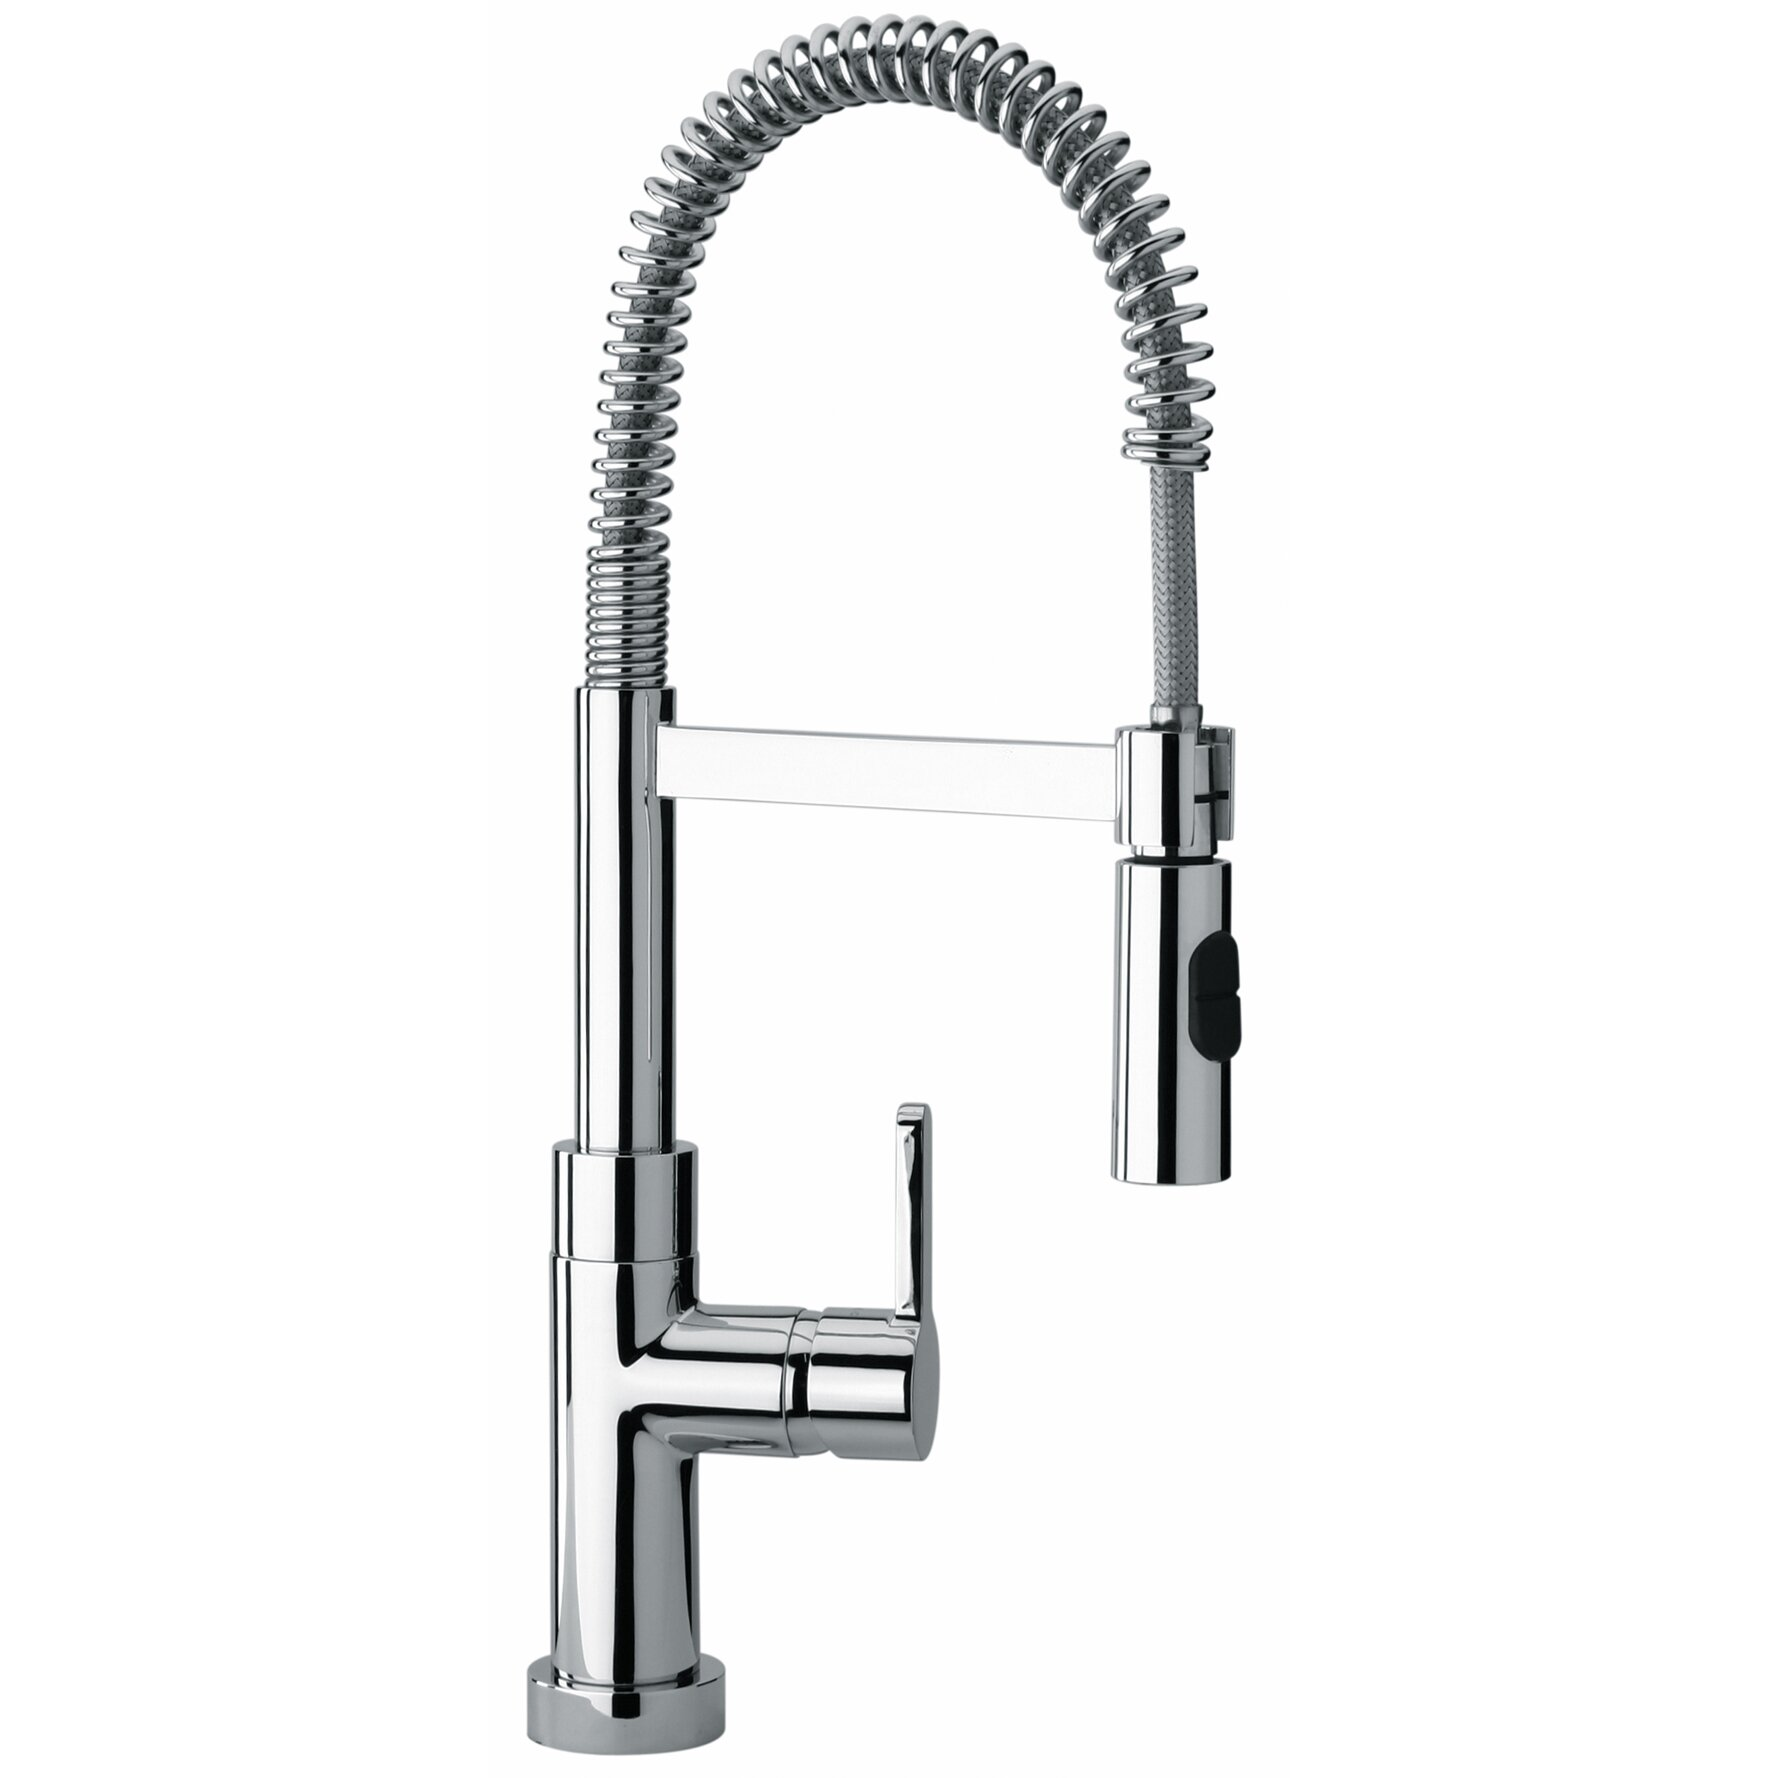 Kitchen Faucets With Sprayer Jewel Faucets J25 Kitchen Series Single Hole Kitchen Faucet With